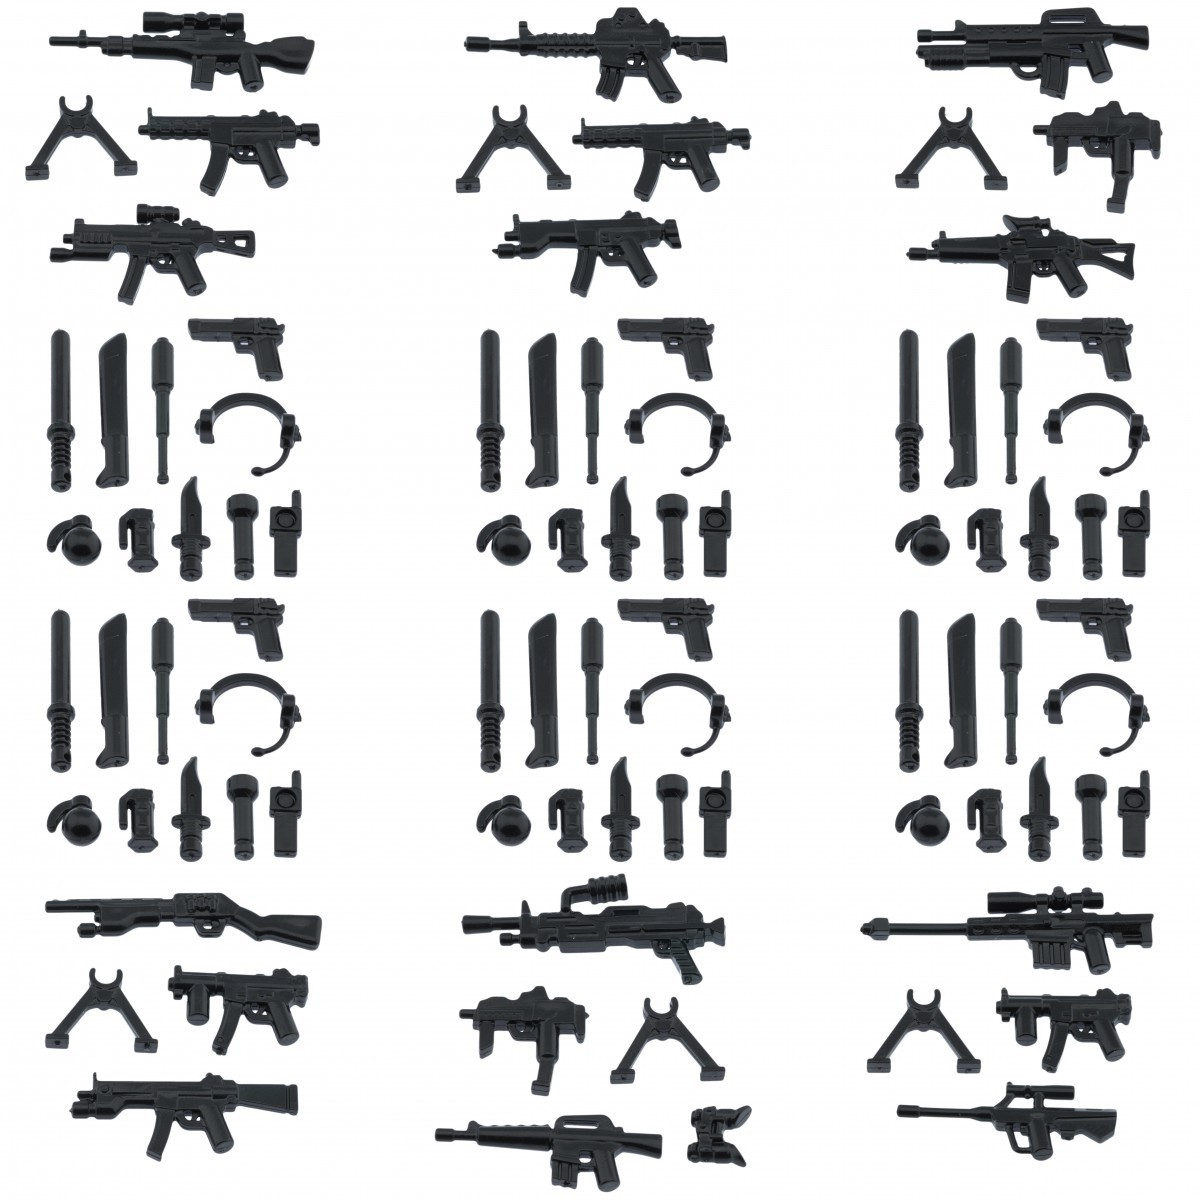 Custom army military guns weapons pack for lego minifigures minifig accessories 12 piece set